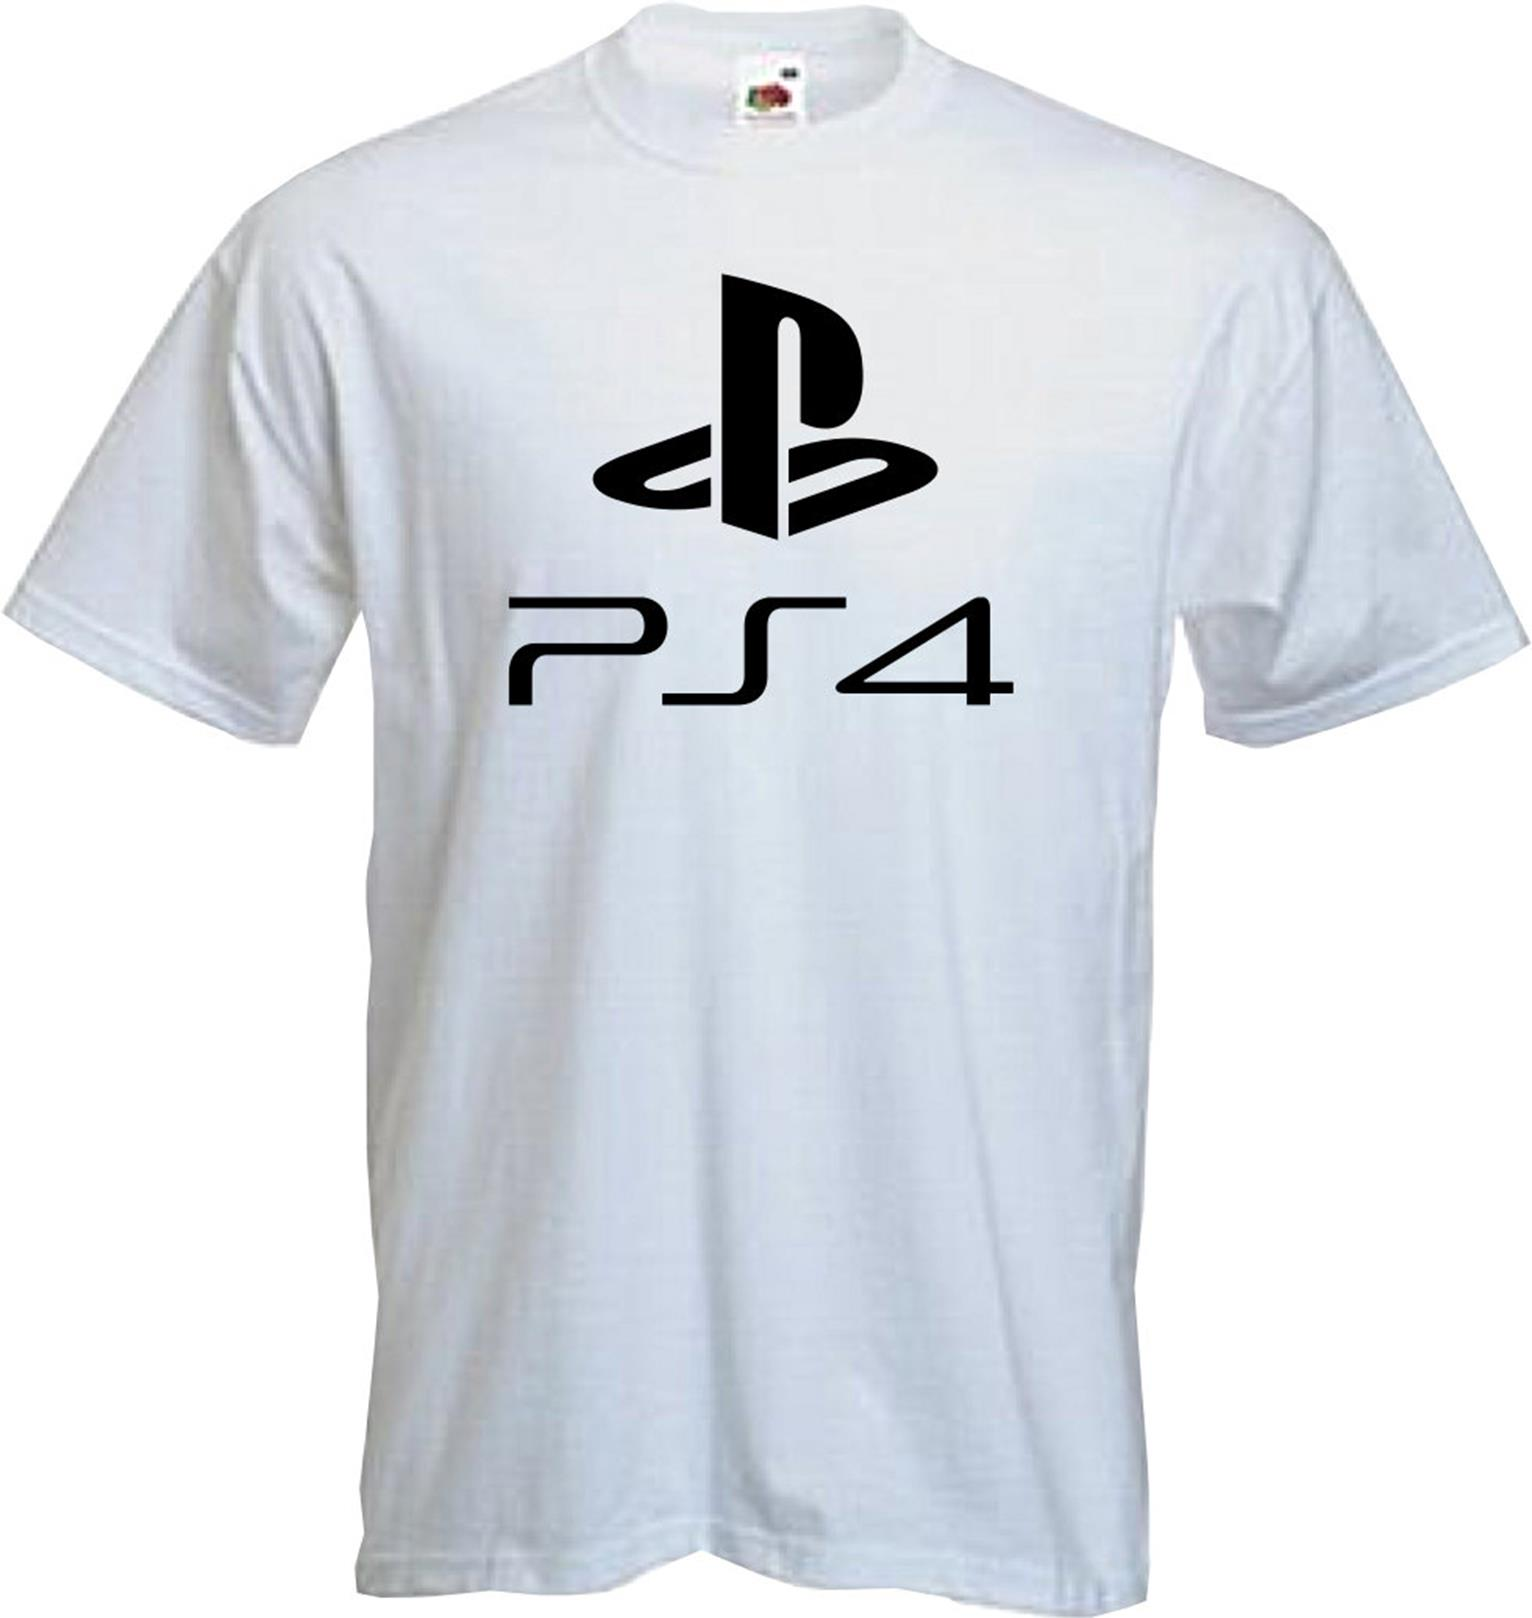 Ps4 playstion 4 t shirt logo gaming present fun for T shirt with logo